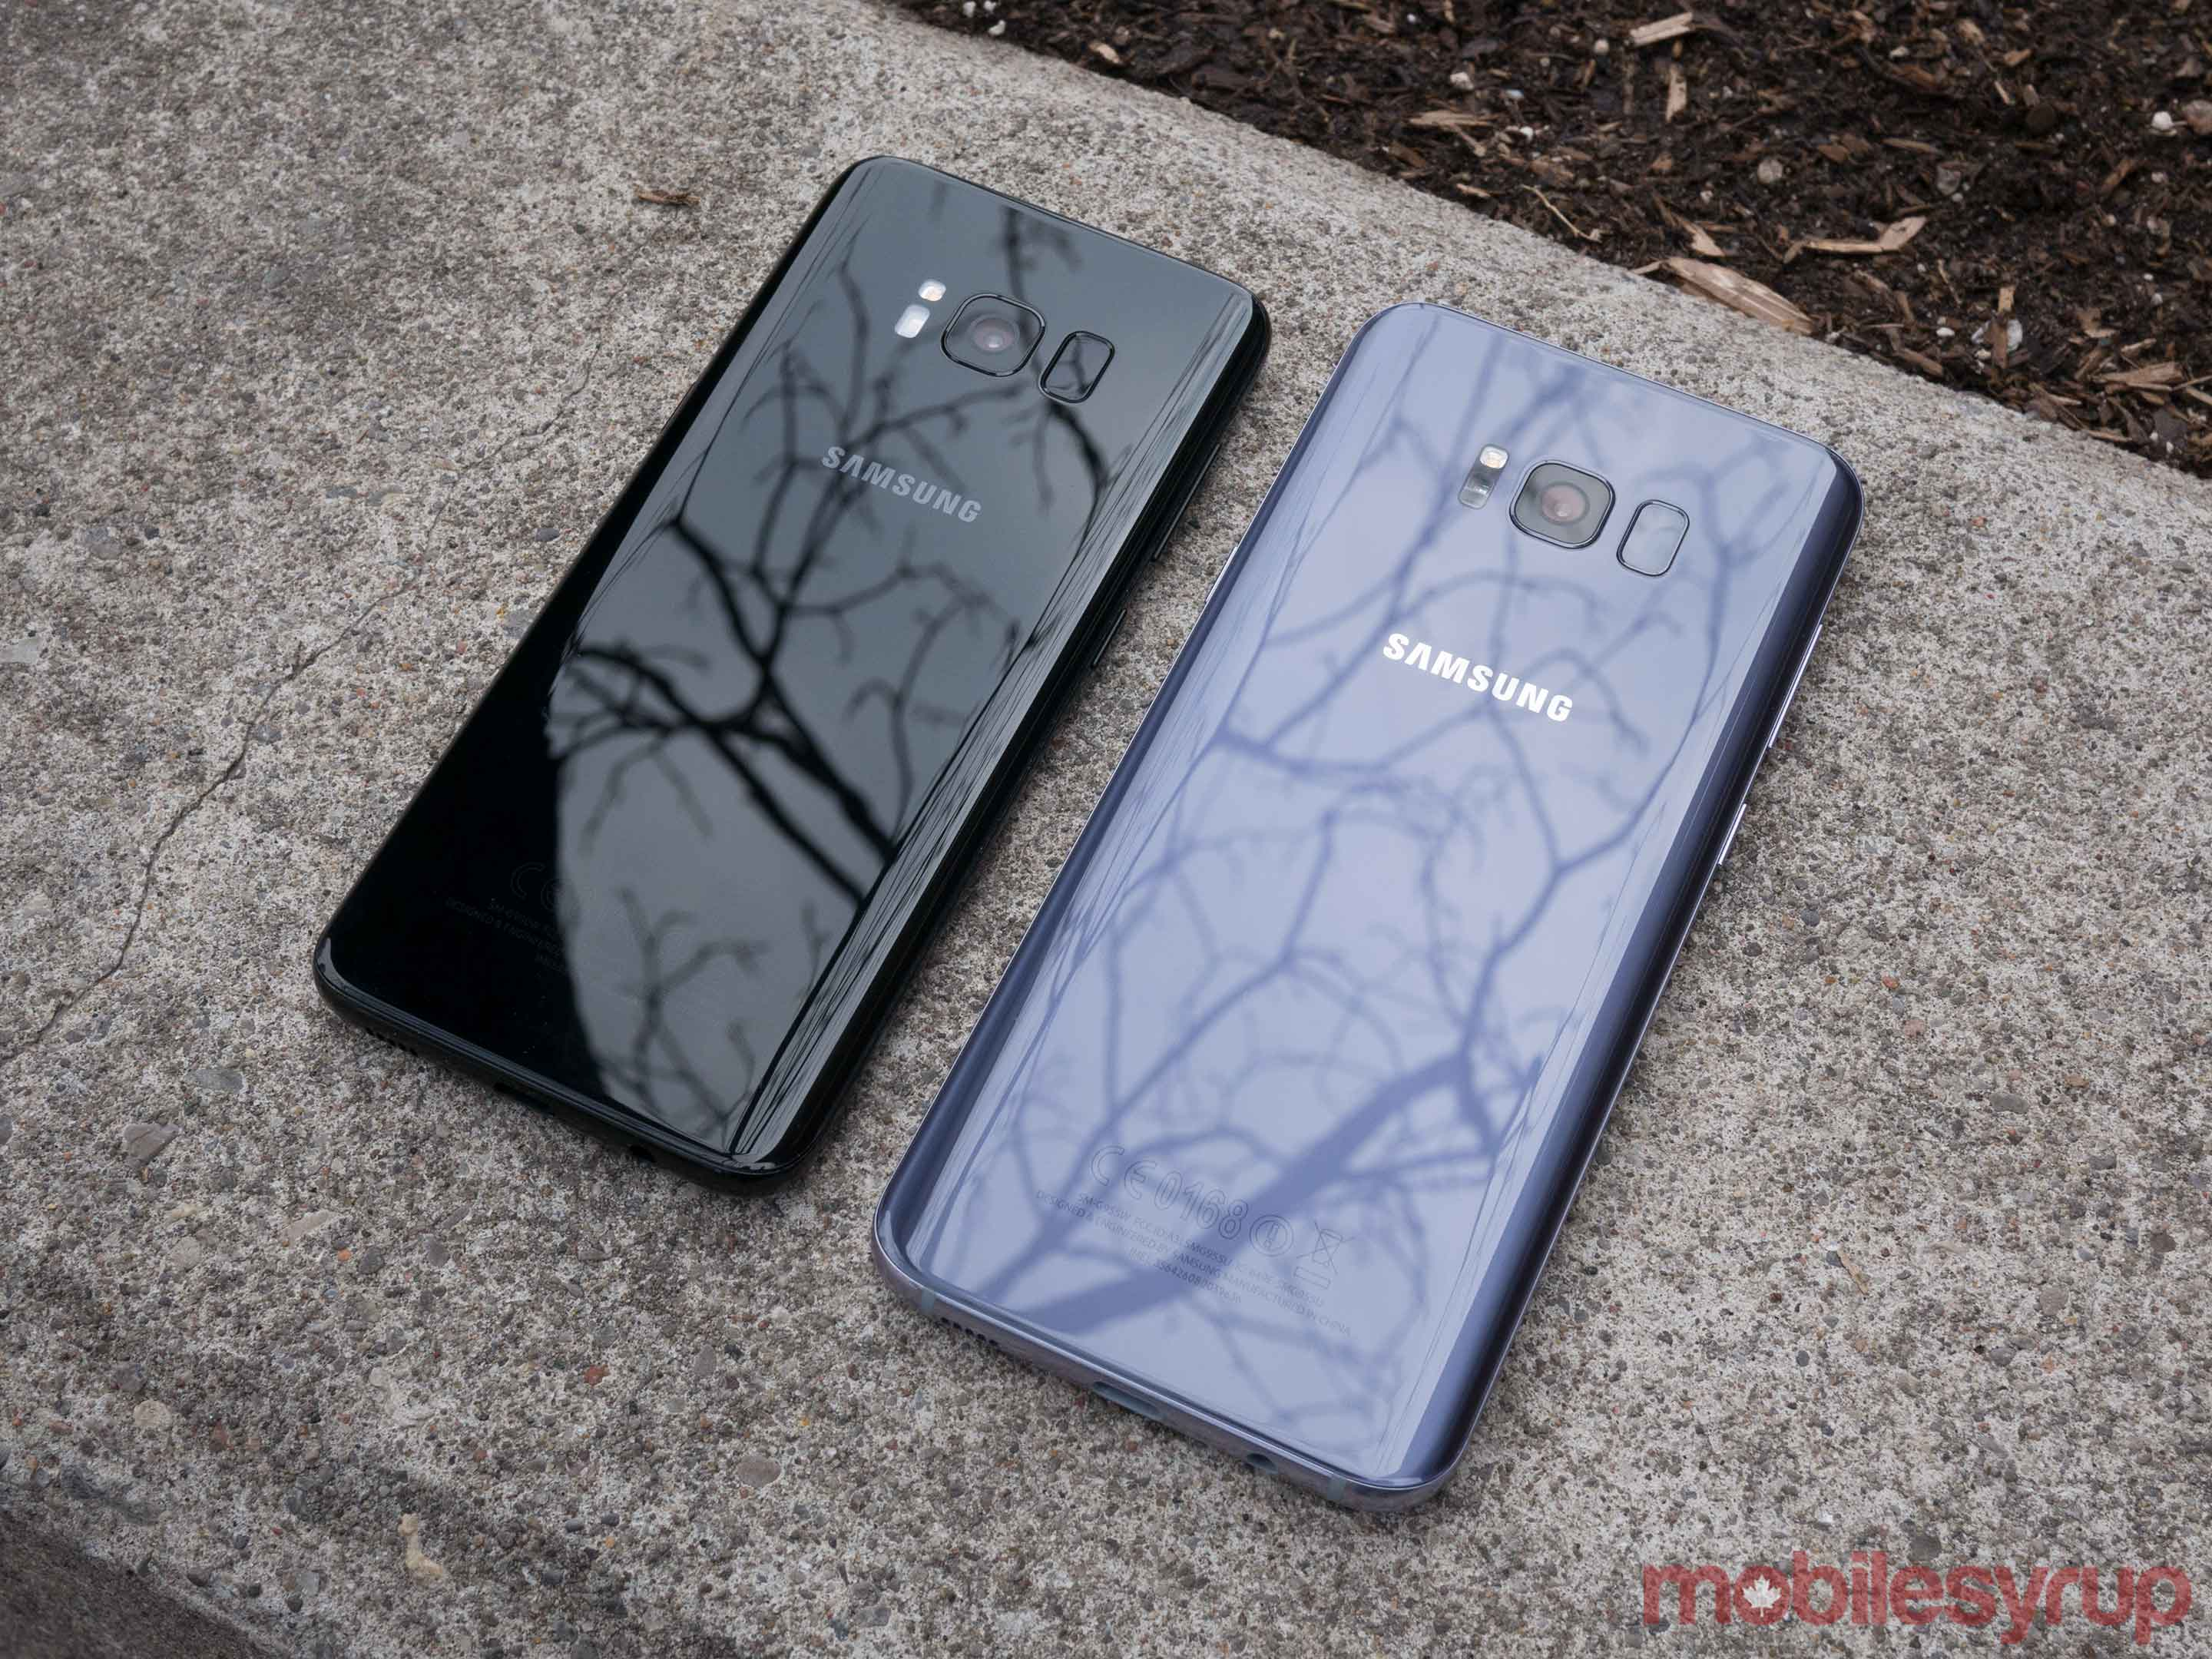 Galaxy S8 and S8+ on street curb